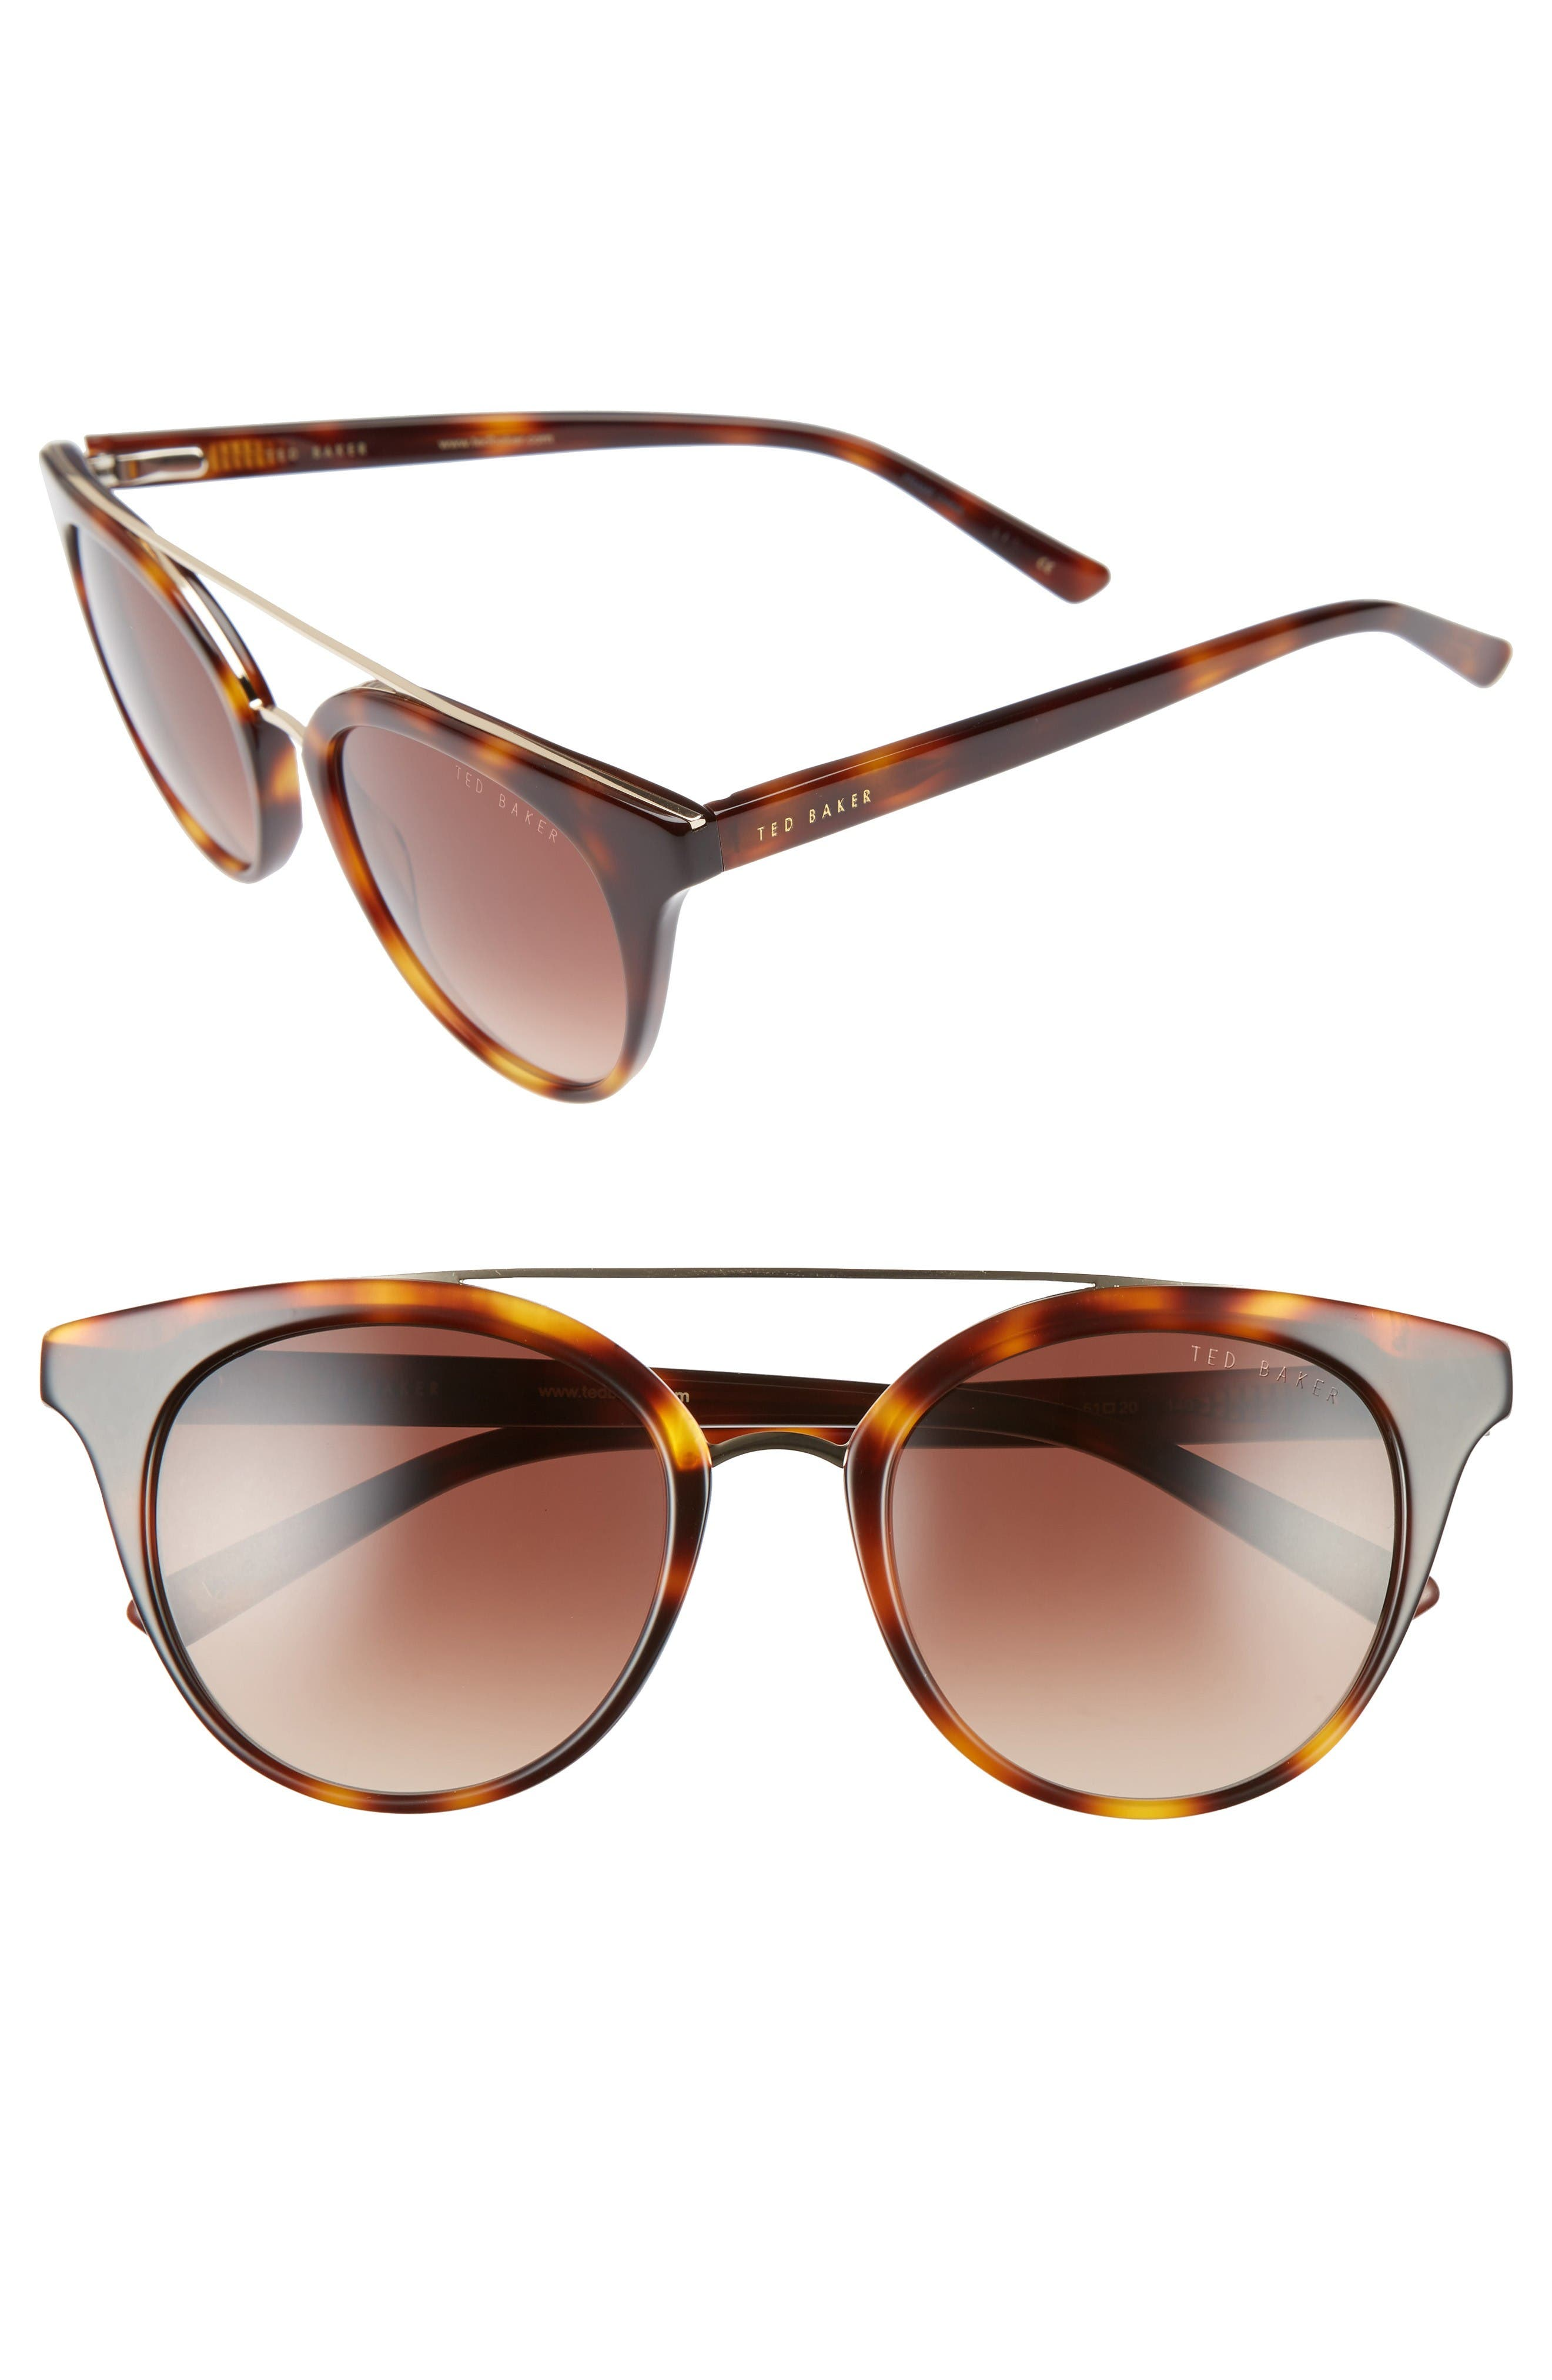 Alternate Image 1 Selected - Ted Baker London 51mm Gradient Lens Round Retro Sunglasses